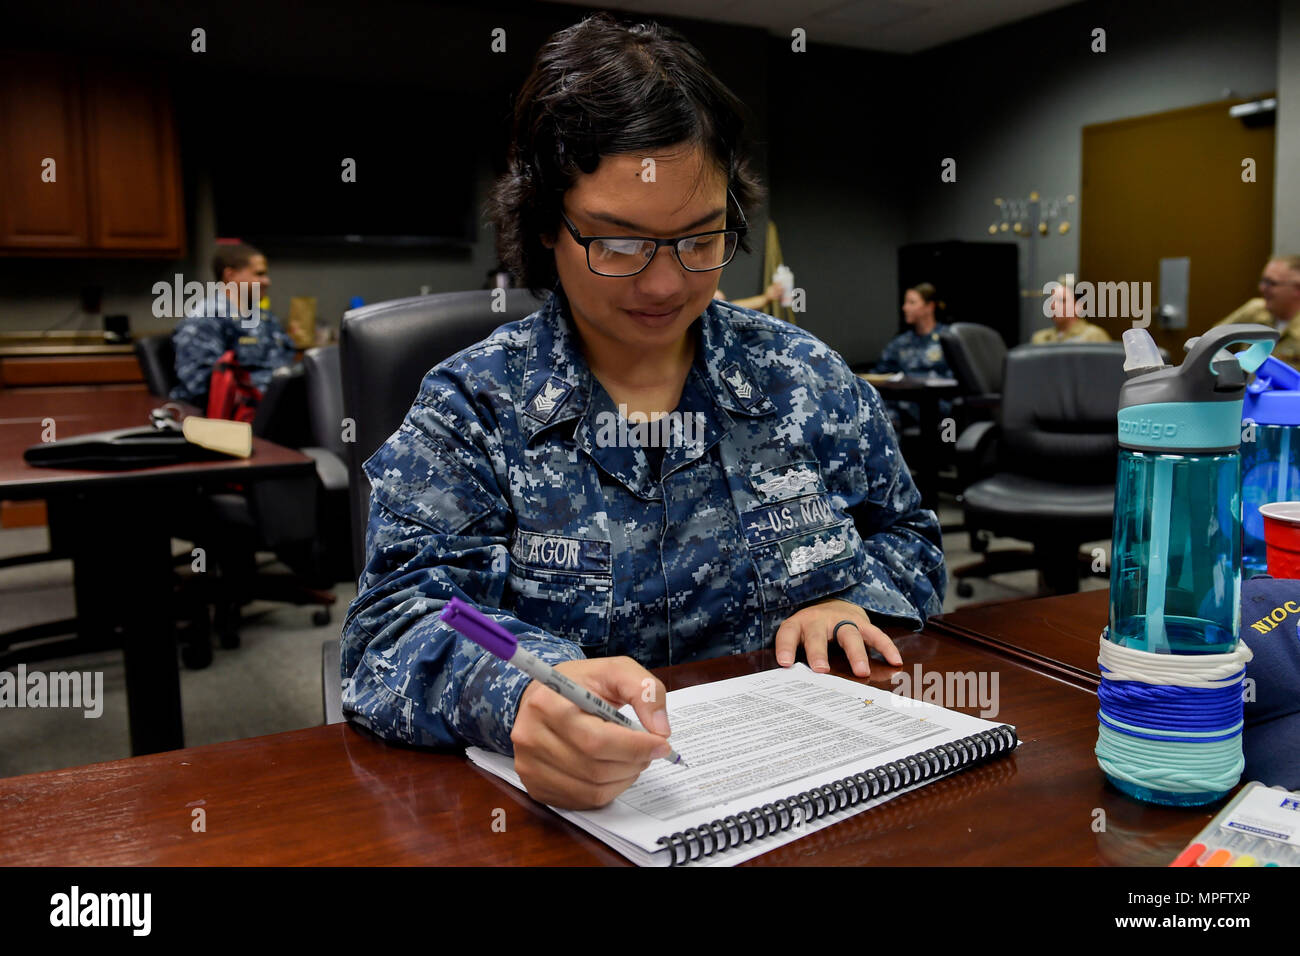 170309-N-FI568-035  PENSACOLA, Fla. (March 9, 2017) Cryptologic Technician (Interpretive)(CTI) 1st Class Amorita Malogon takes notes during a biennial occupational standards review for the CTI rating. The occupational standards review process breaks down core tasks, job descriptions, and skills and abilities for each rating. It serves as the basis for all Navy professional development and training tools, such as rate training manuals, personal qualification standards, course curricula and advancement exams. (U.S. Navy photo by Mass Communication Specialist 2nd Class Taylor L. Jackson/Released) - Stock Image